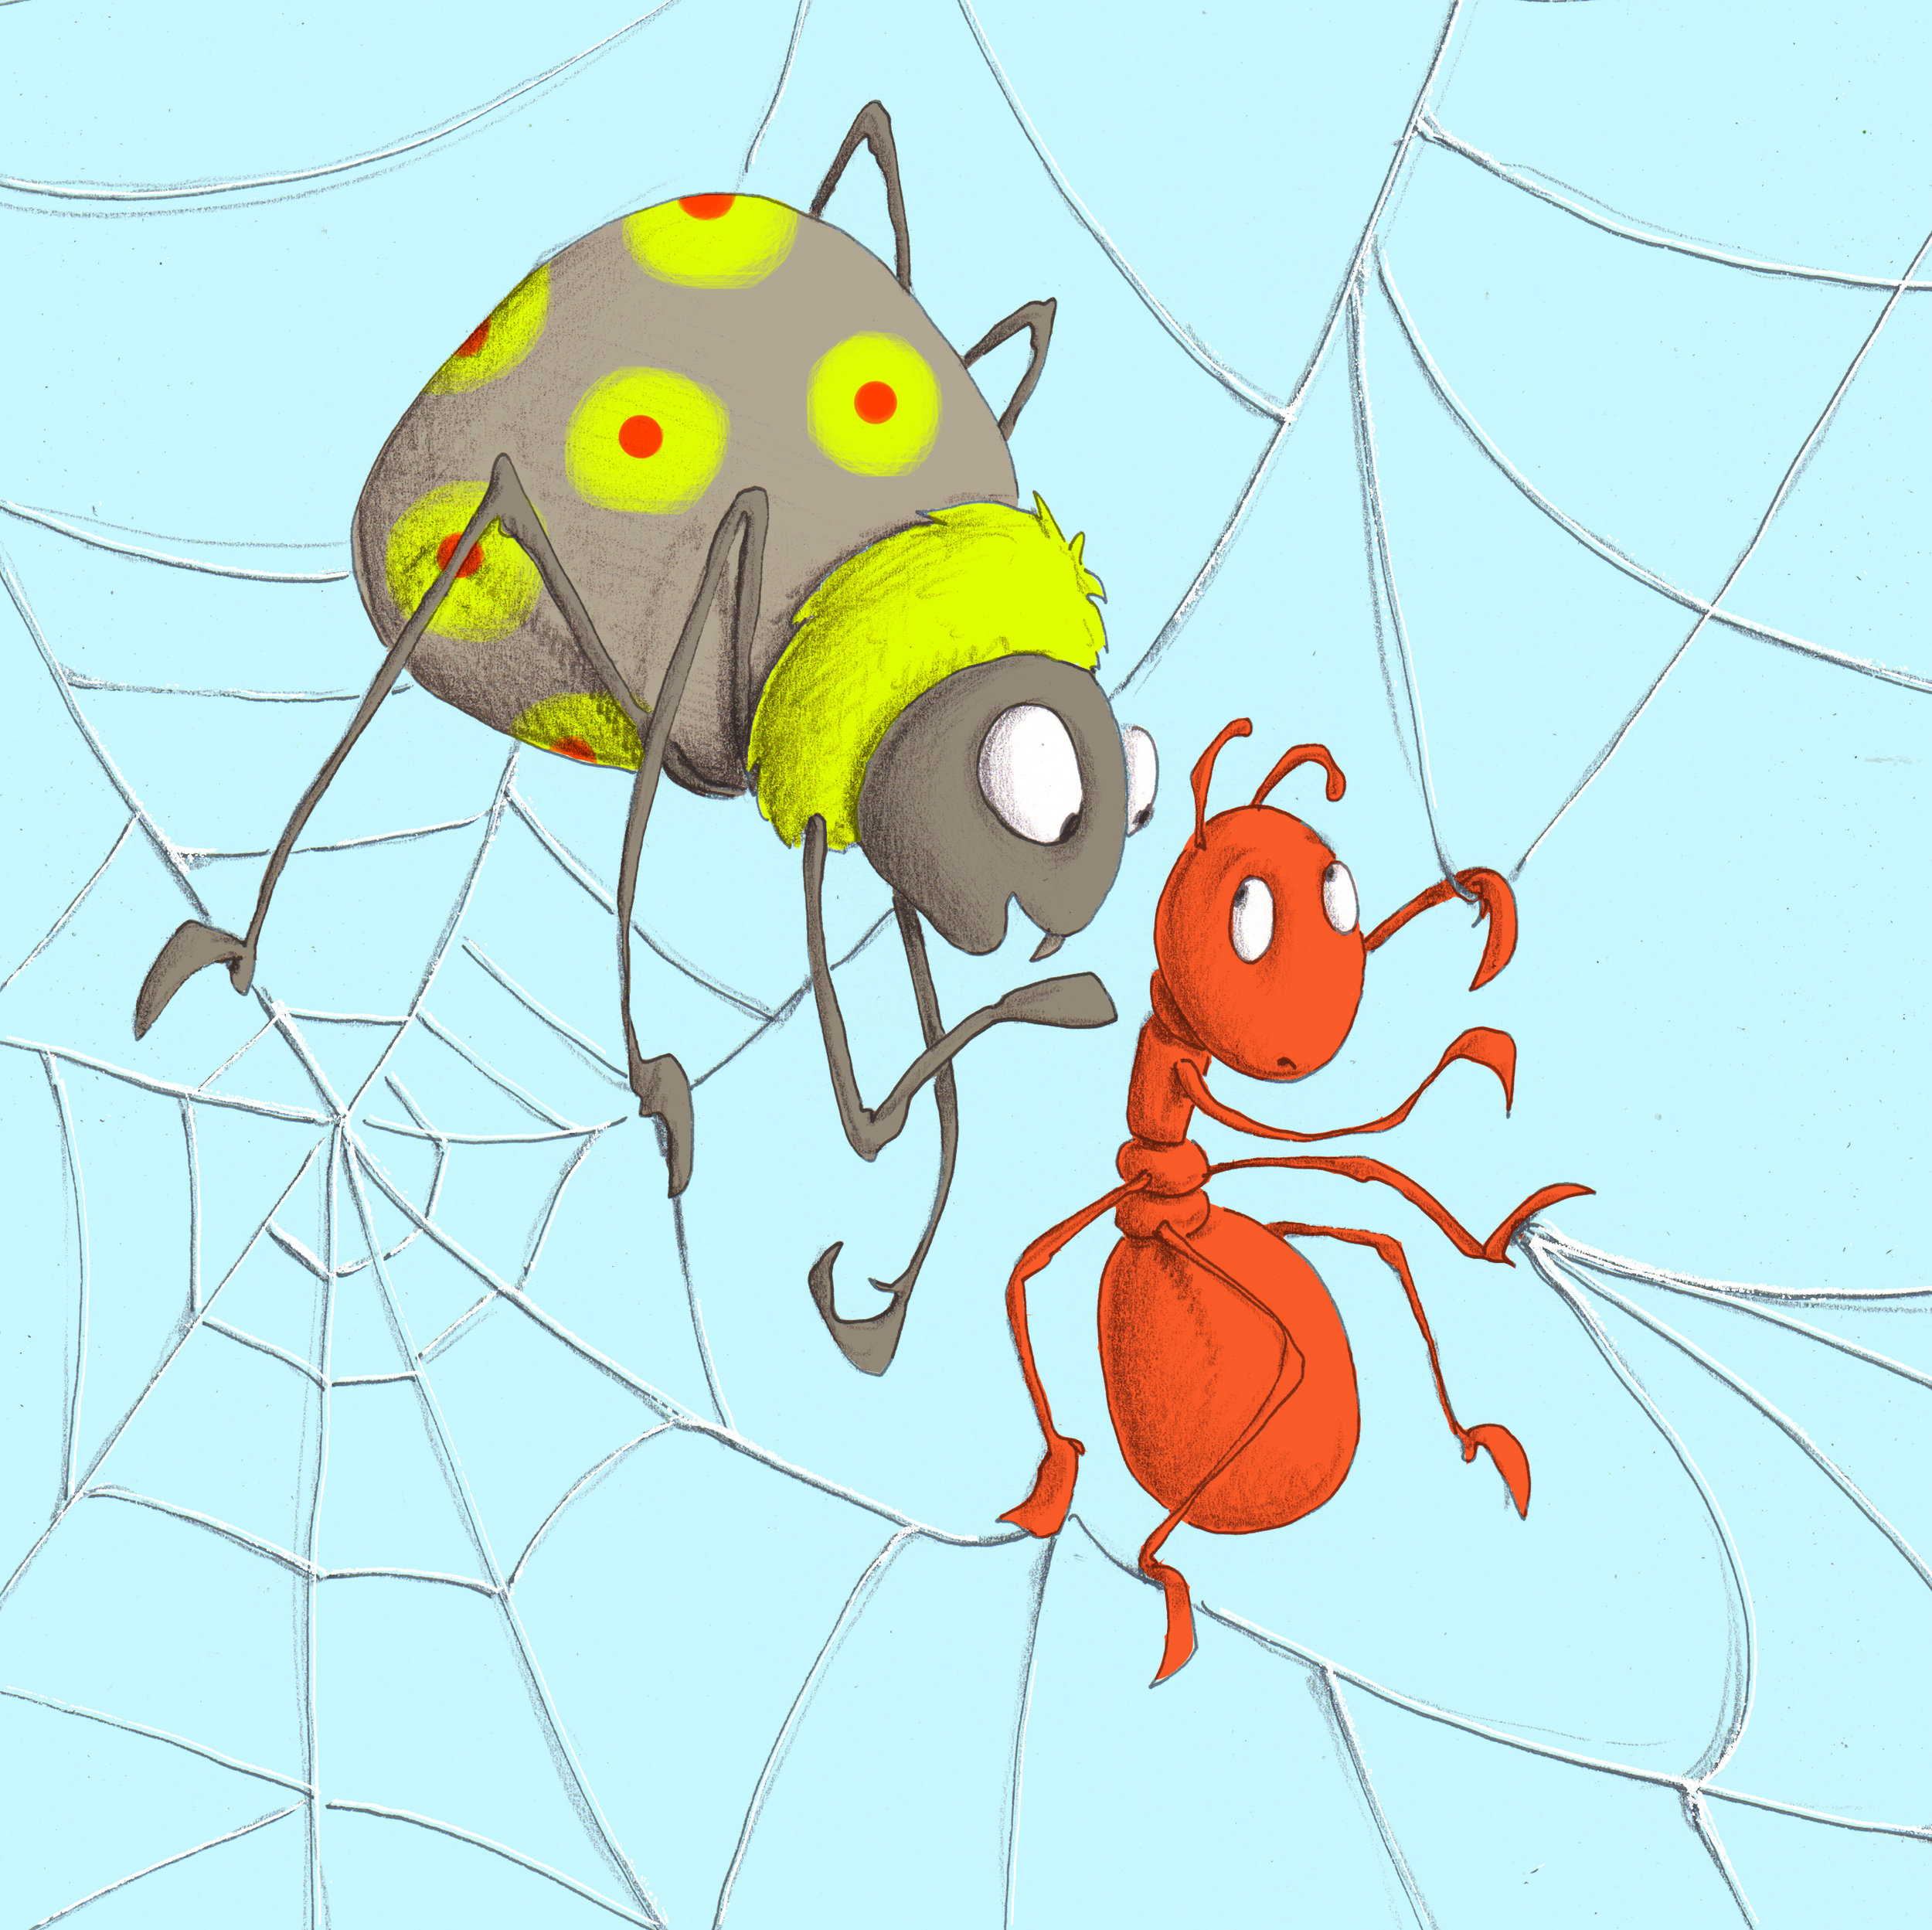 Download image from Little Ant and the Spider.